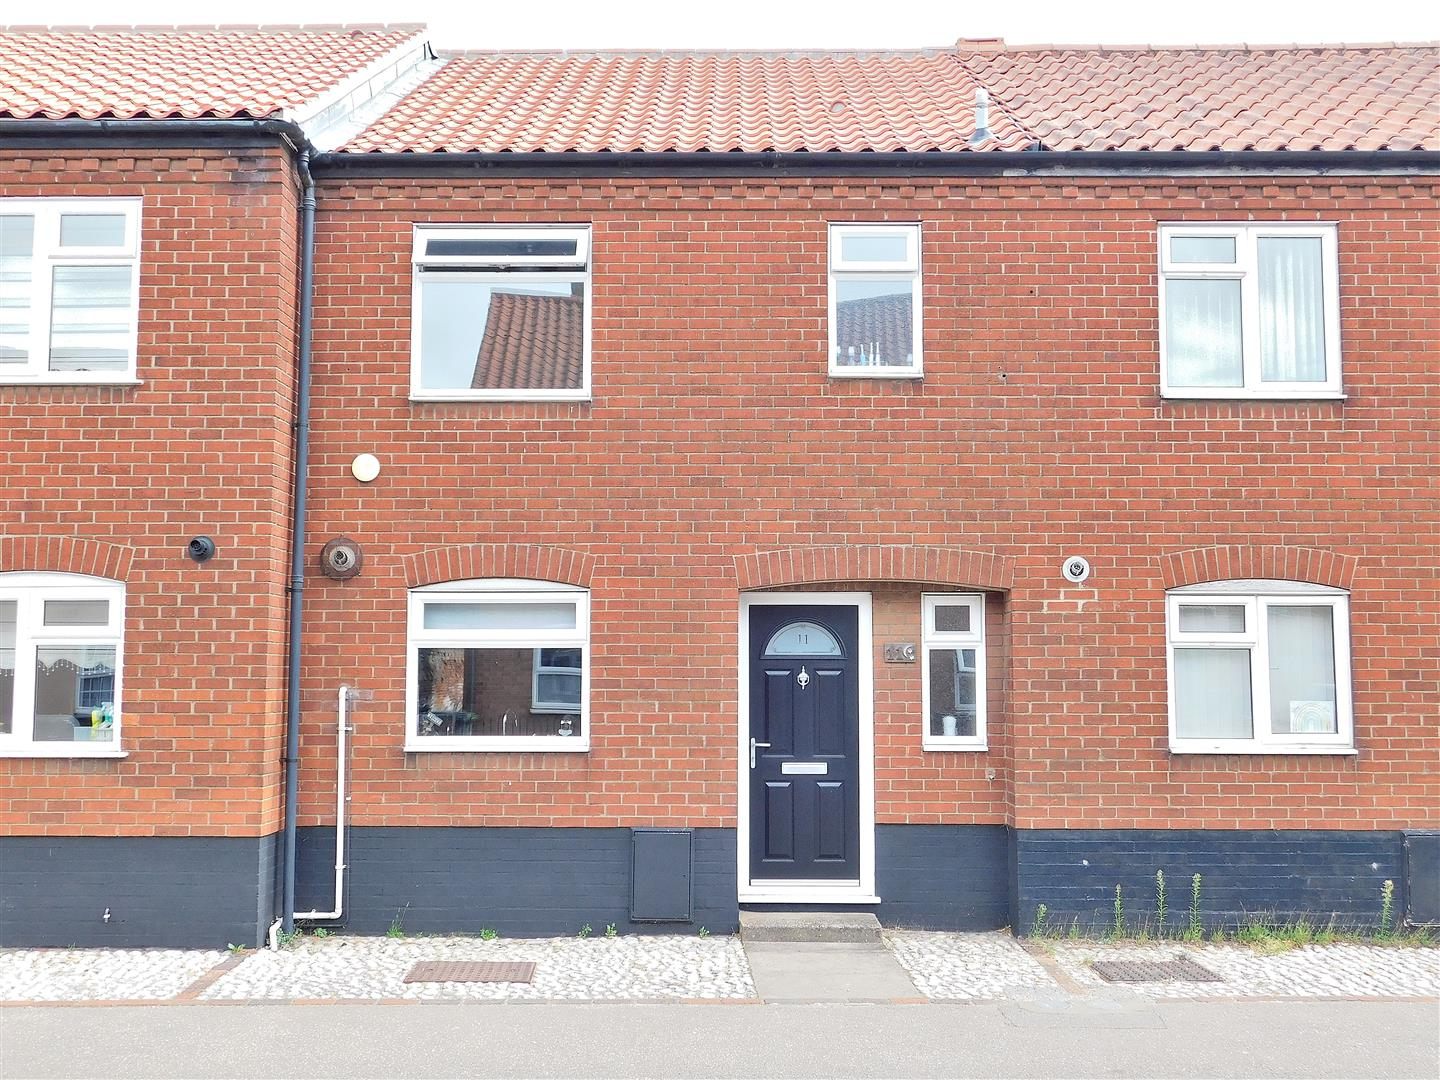 3 bed terraced house for sale in Swaffham, PE37 7DB  - Property Image 1